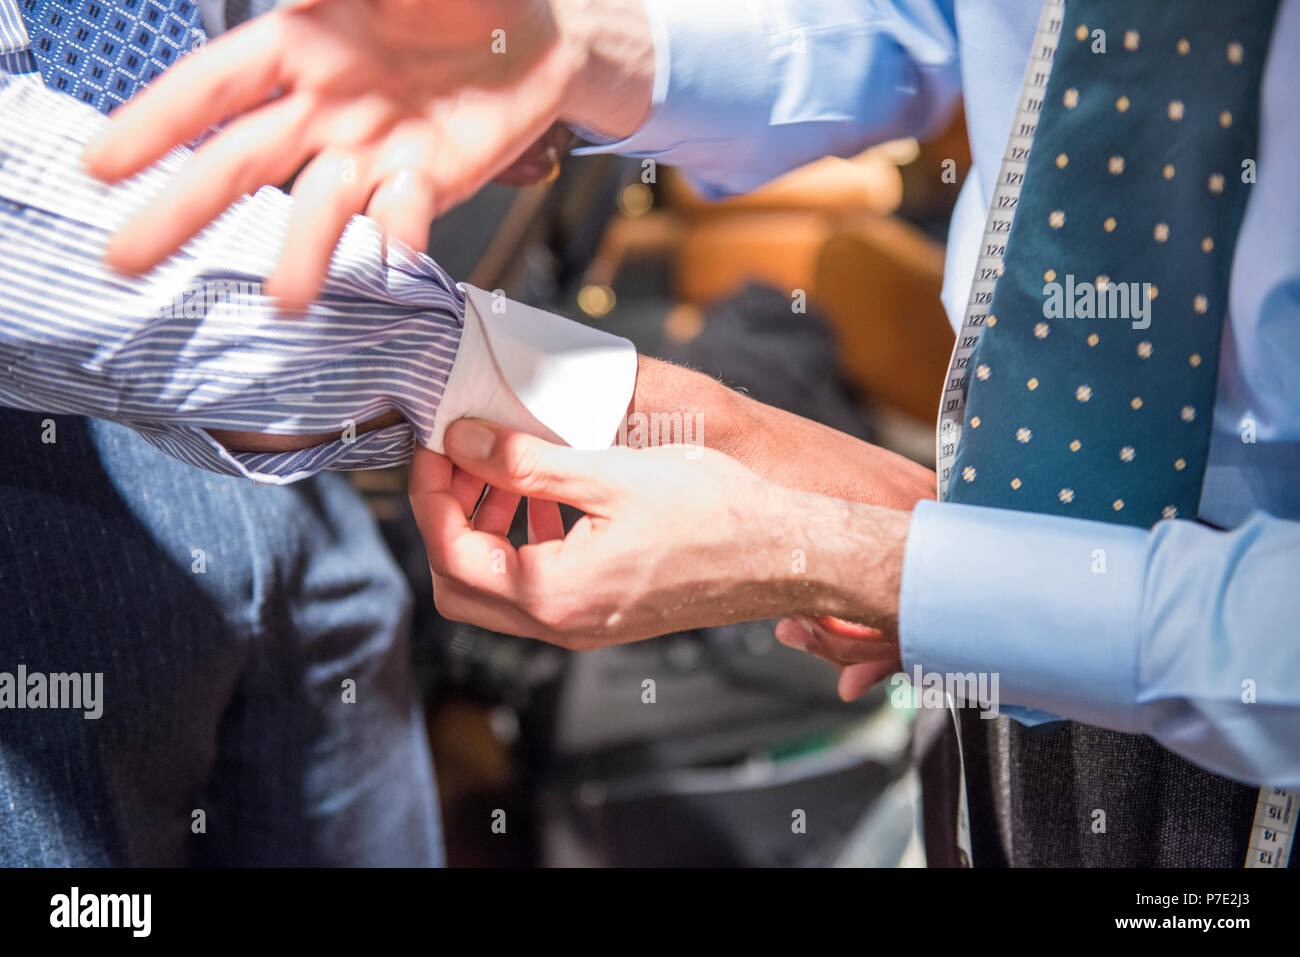 Tailor fastening shirt cuff of customer, cropped close up of hands - Stock Image